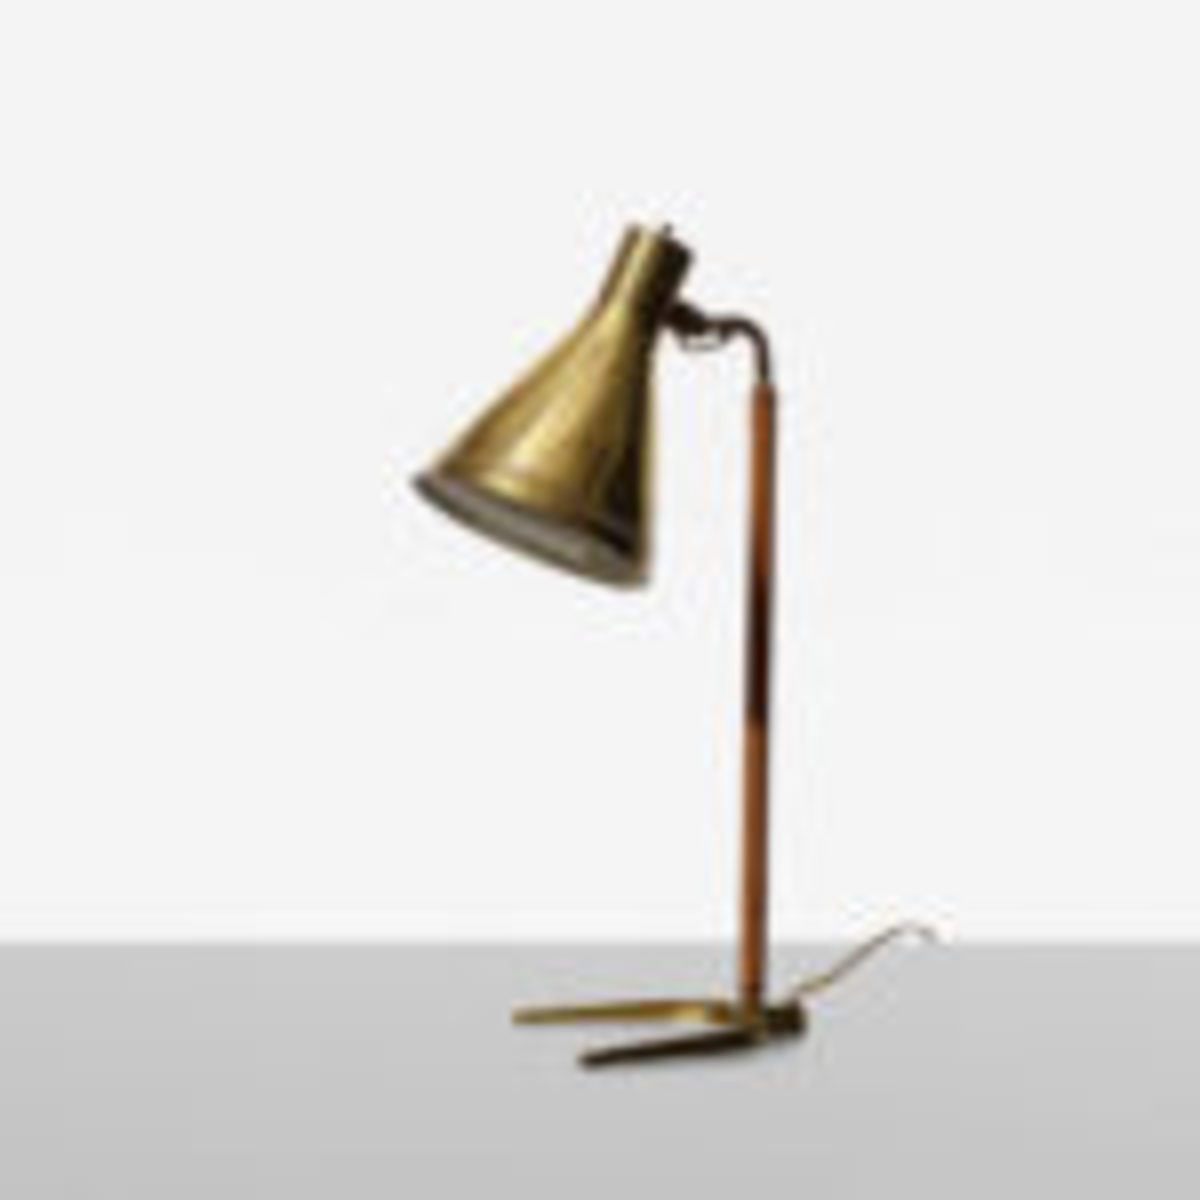 "Brass and leather table lamp, model 9224; signed, 8"" x 12"" x 21"", Paavo Tynell for Taito OY, Finland, 1950, realized $7,800. Courtesy Wright: Auctions of Art and Design, www.wright20.com"